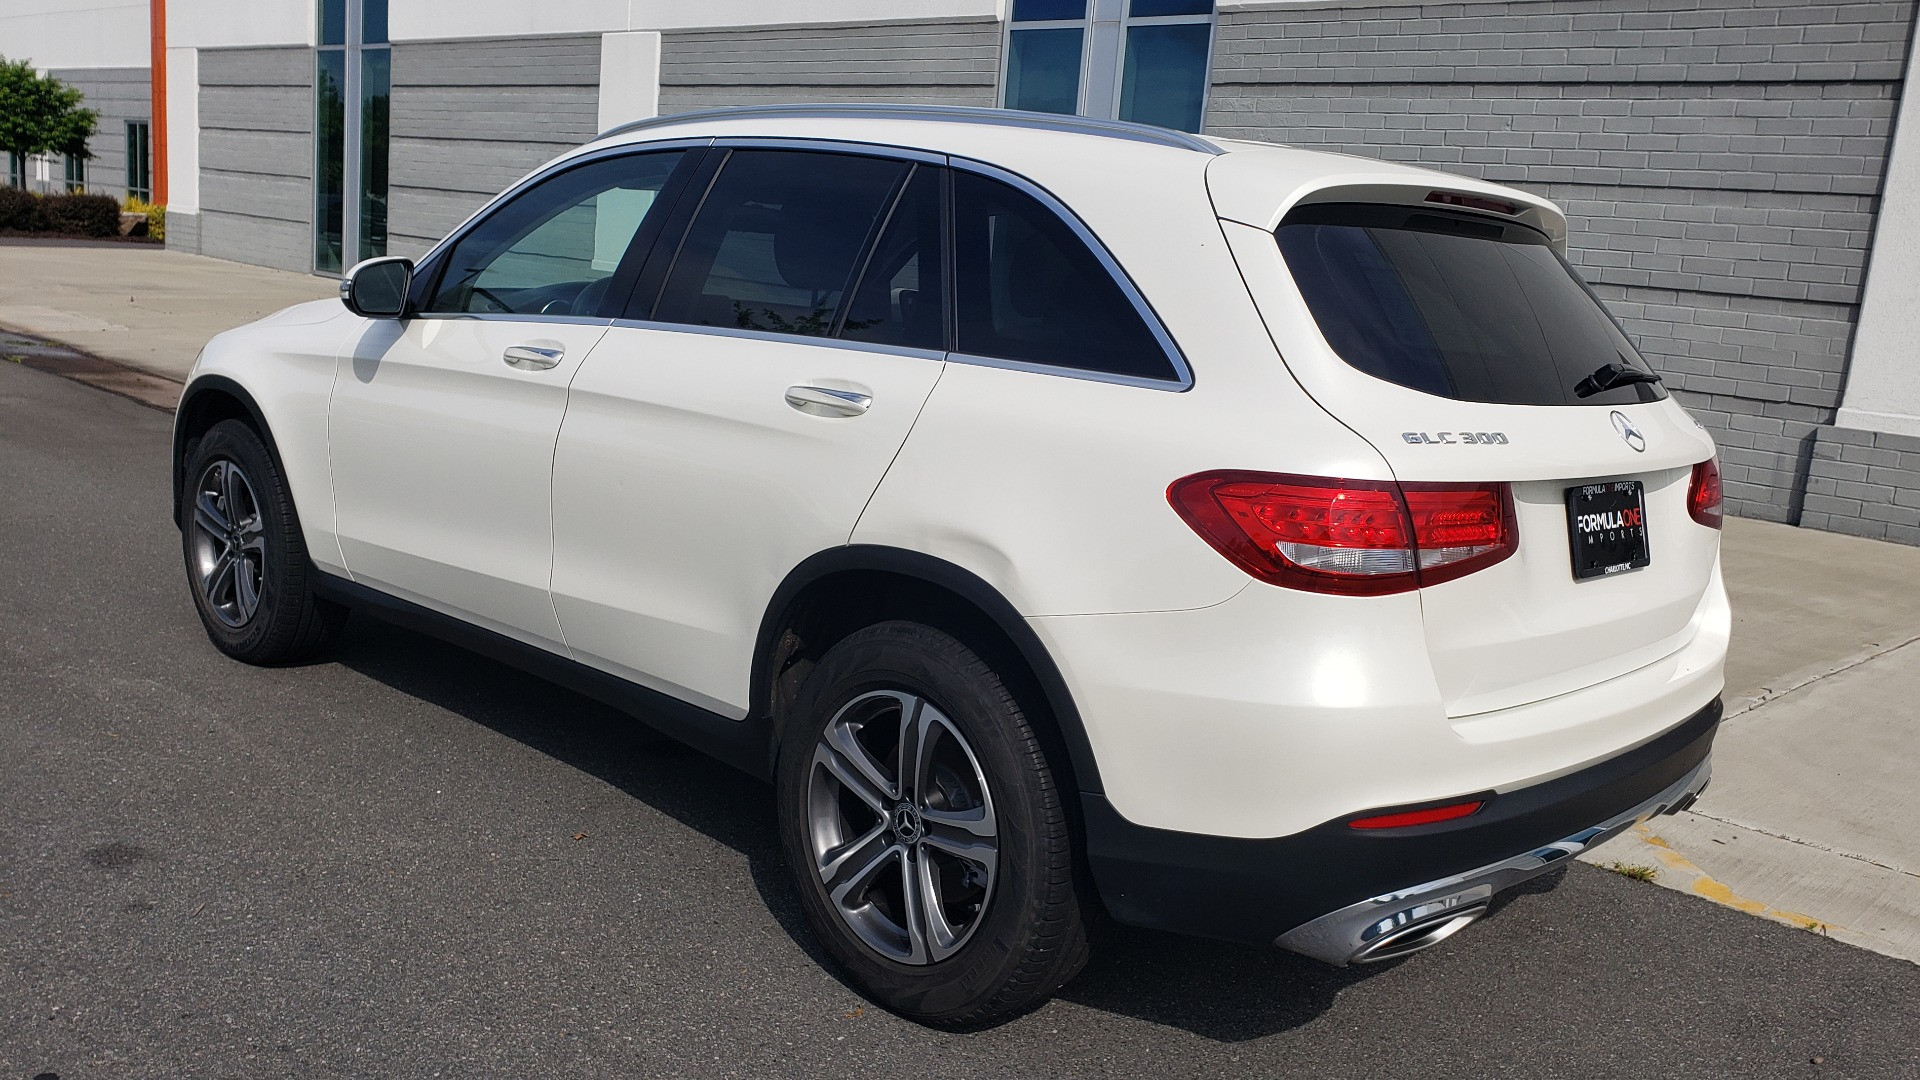 Used 2018 Mercedes-Benz GLC 300 4MATIC / PREM PKG / PANO-ROOF / APPLE / REARVIEW for sale $33,397 at Formula Imports in Charlotte NC 28227 7